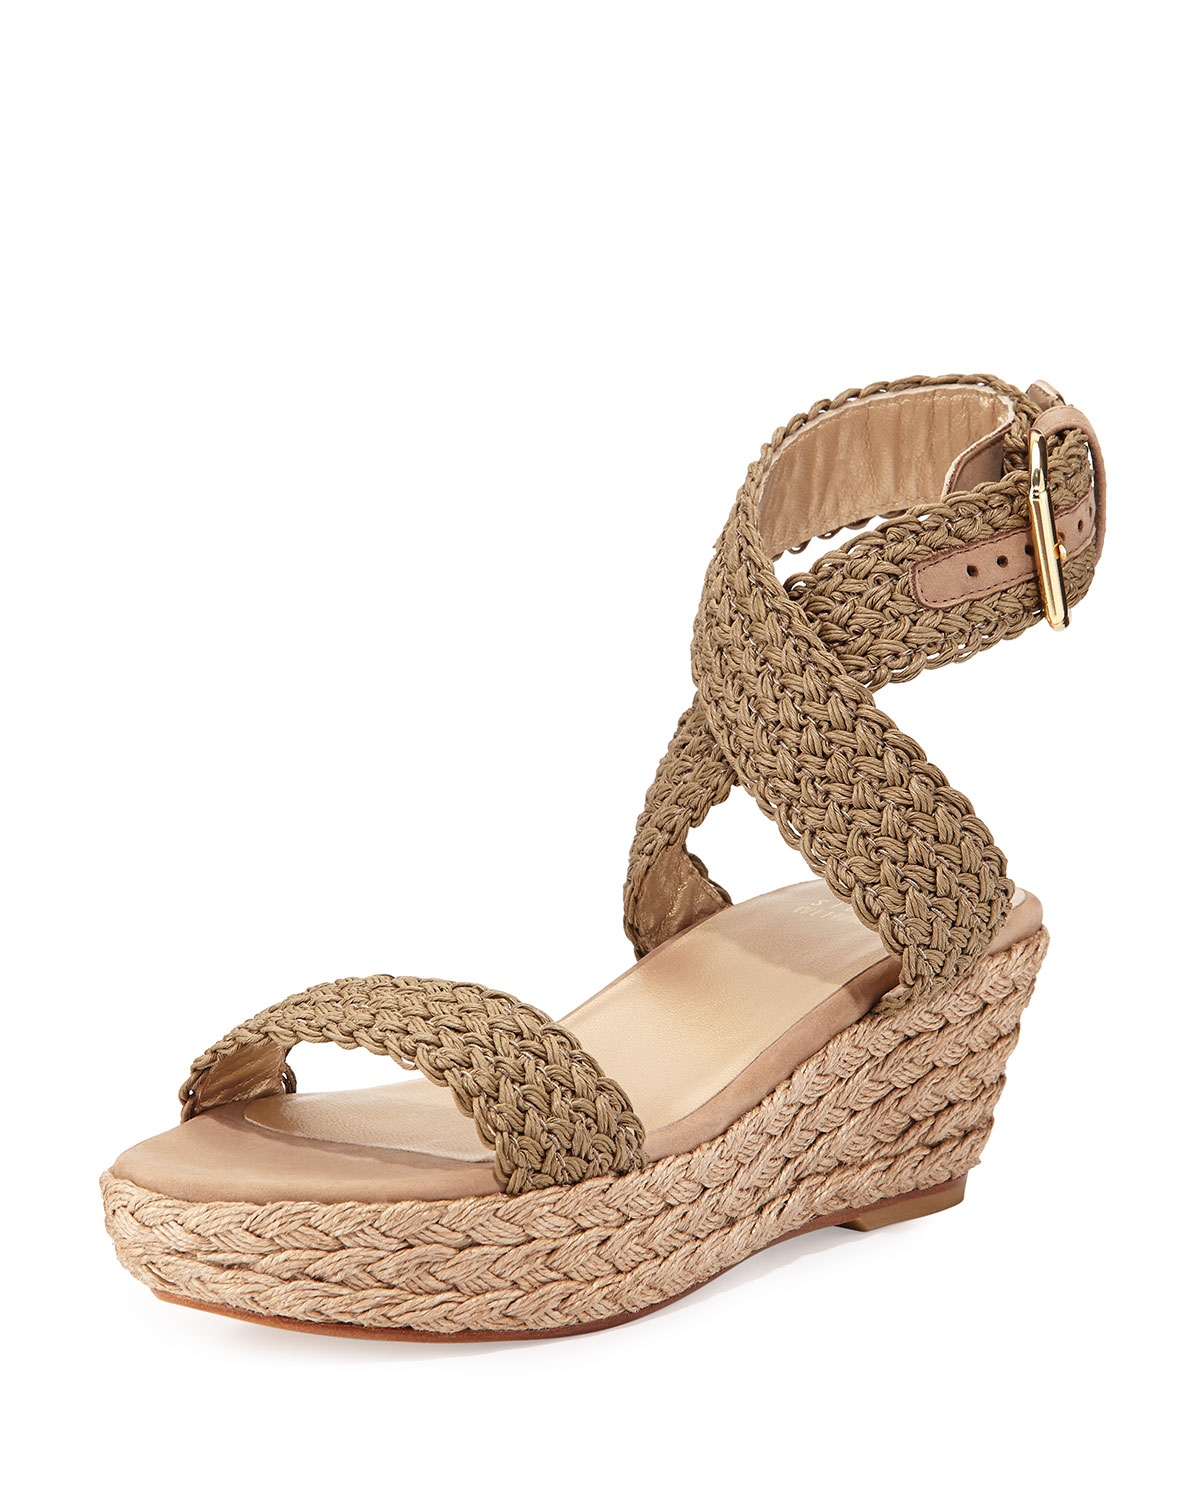 d30d6063f6e Lyst - Stuart Weitzman Alexlo Crochet Wedge Sandal in Natural